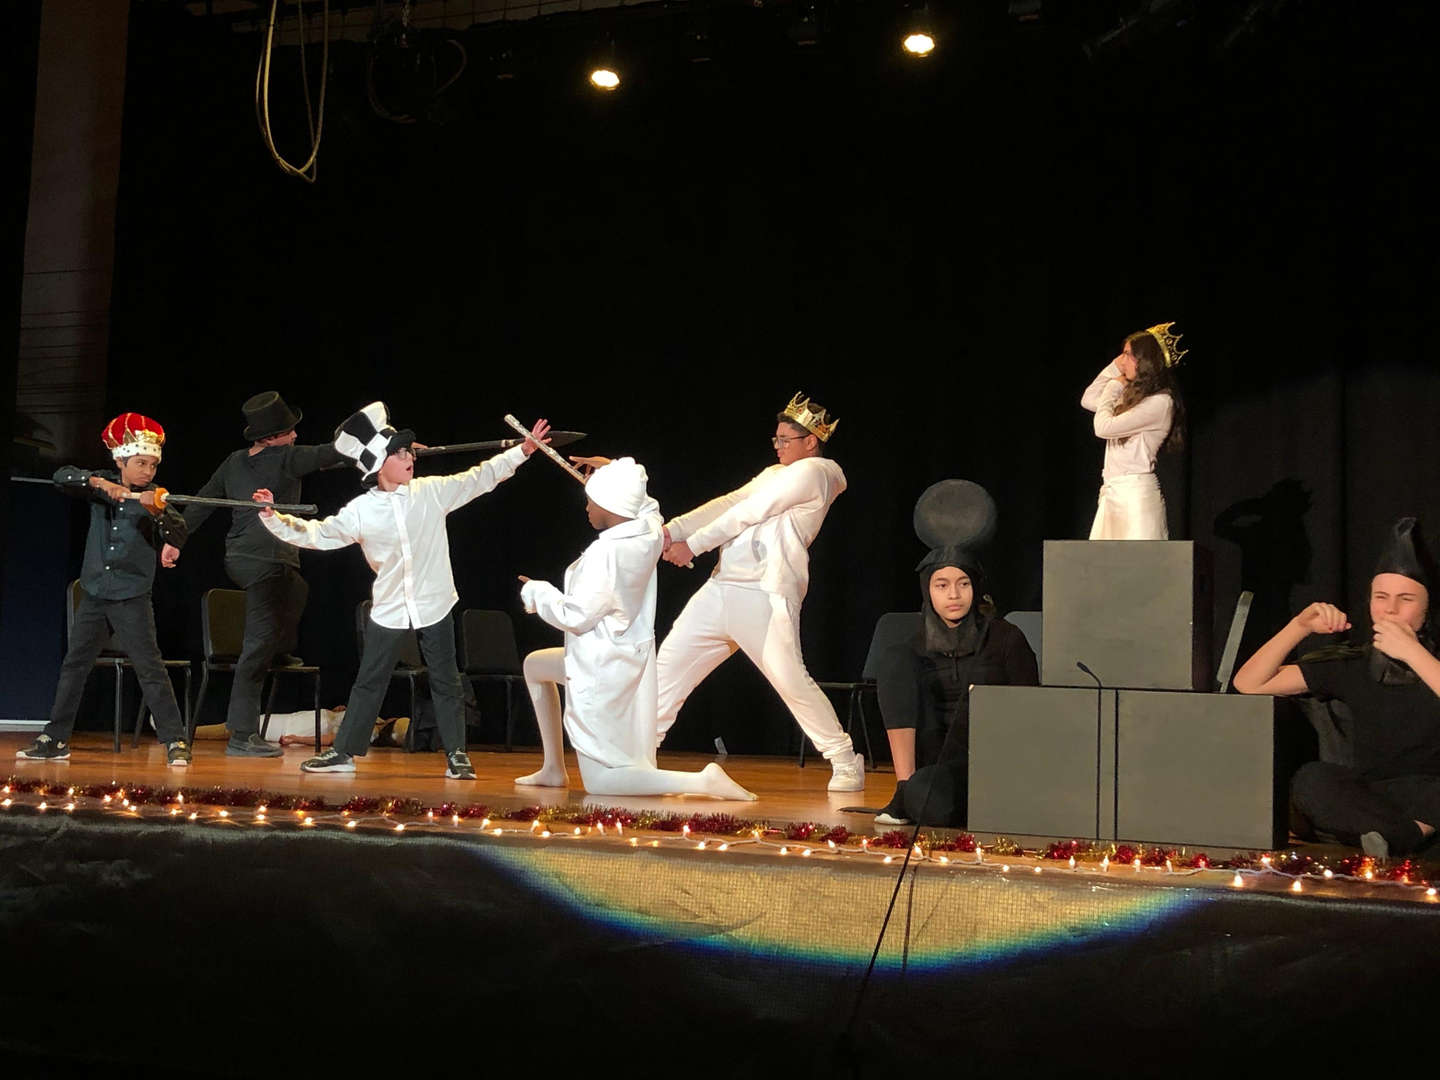 Students performing play on stage